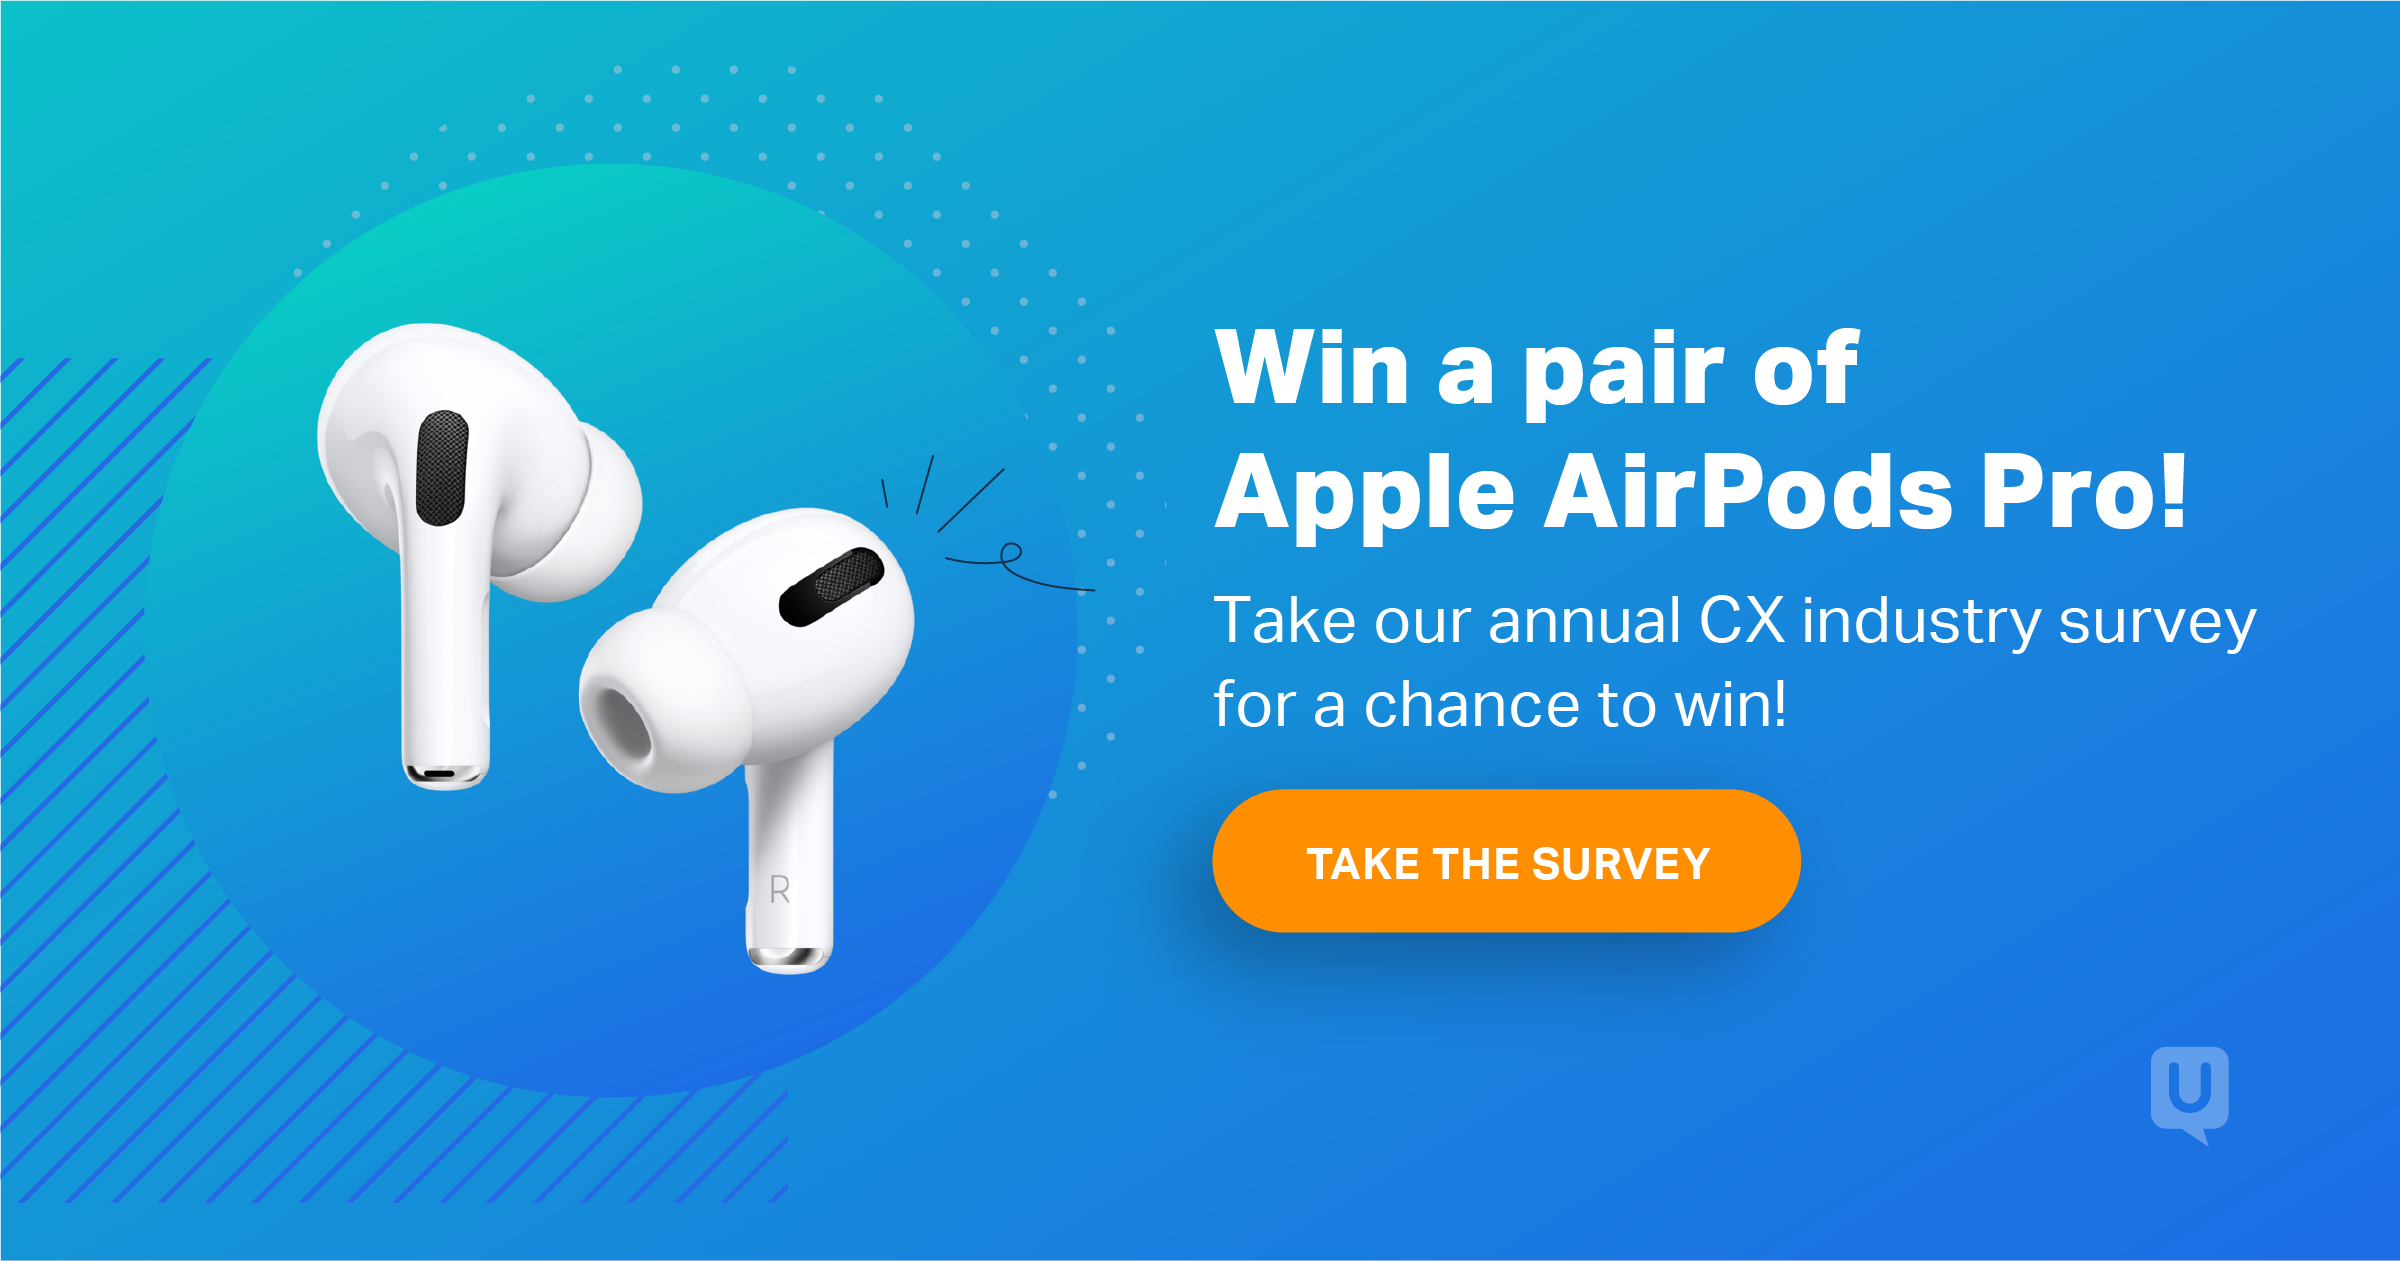 Join the conversation! Take our annual CX Industry Survey for a chance to win a pair of Apple AirPods Pro!